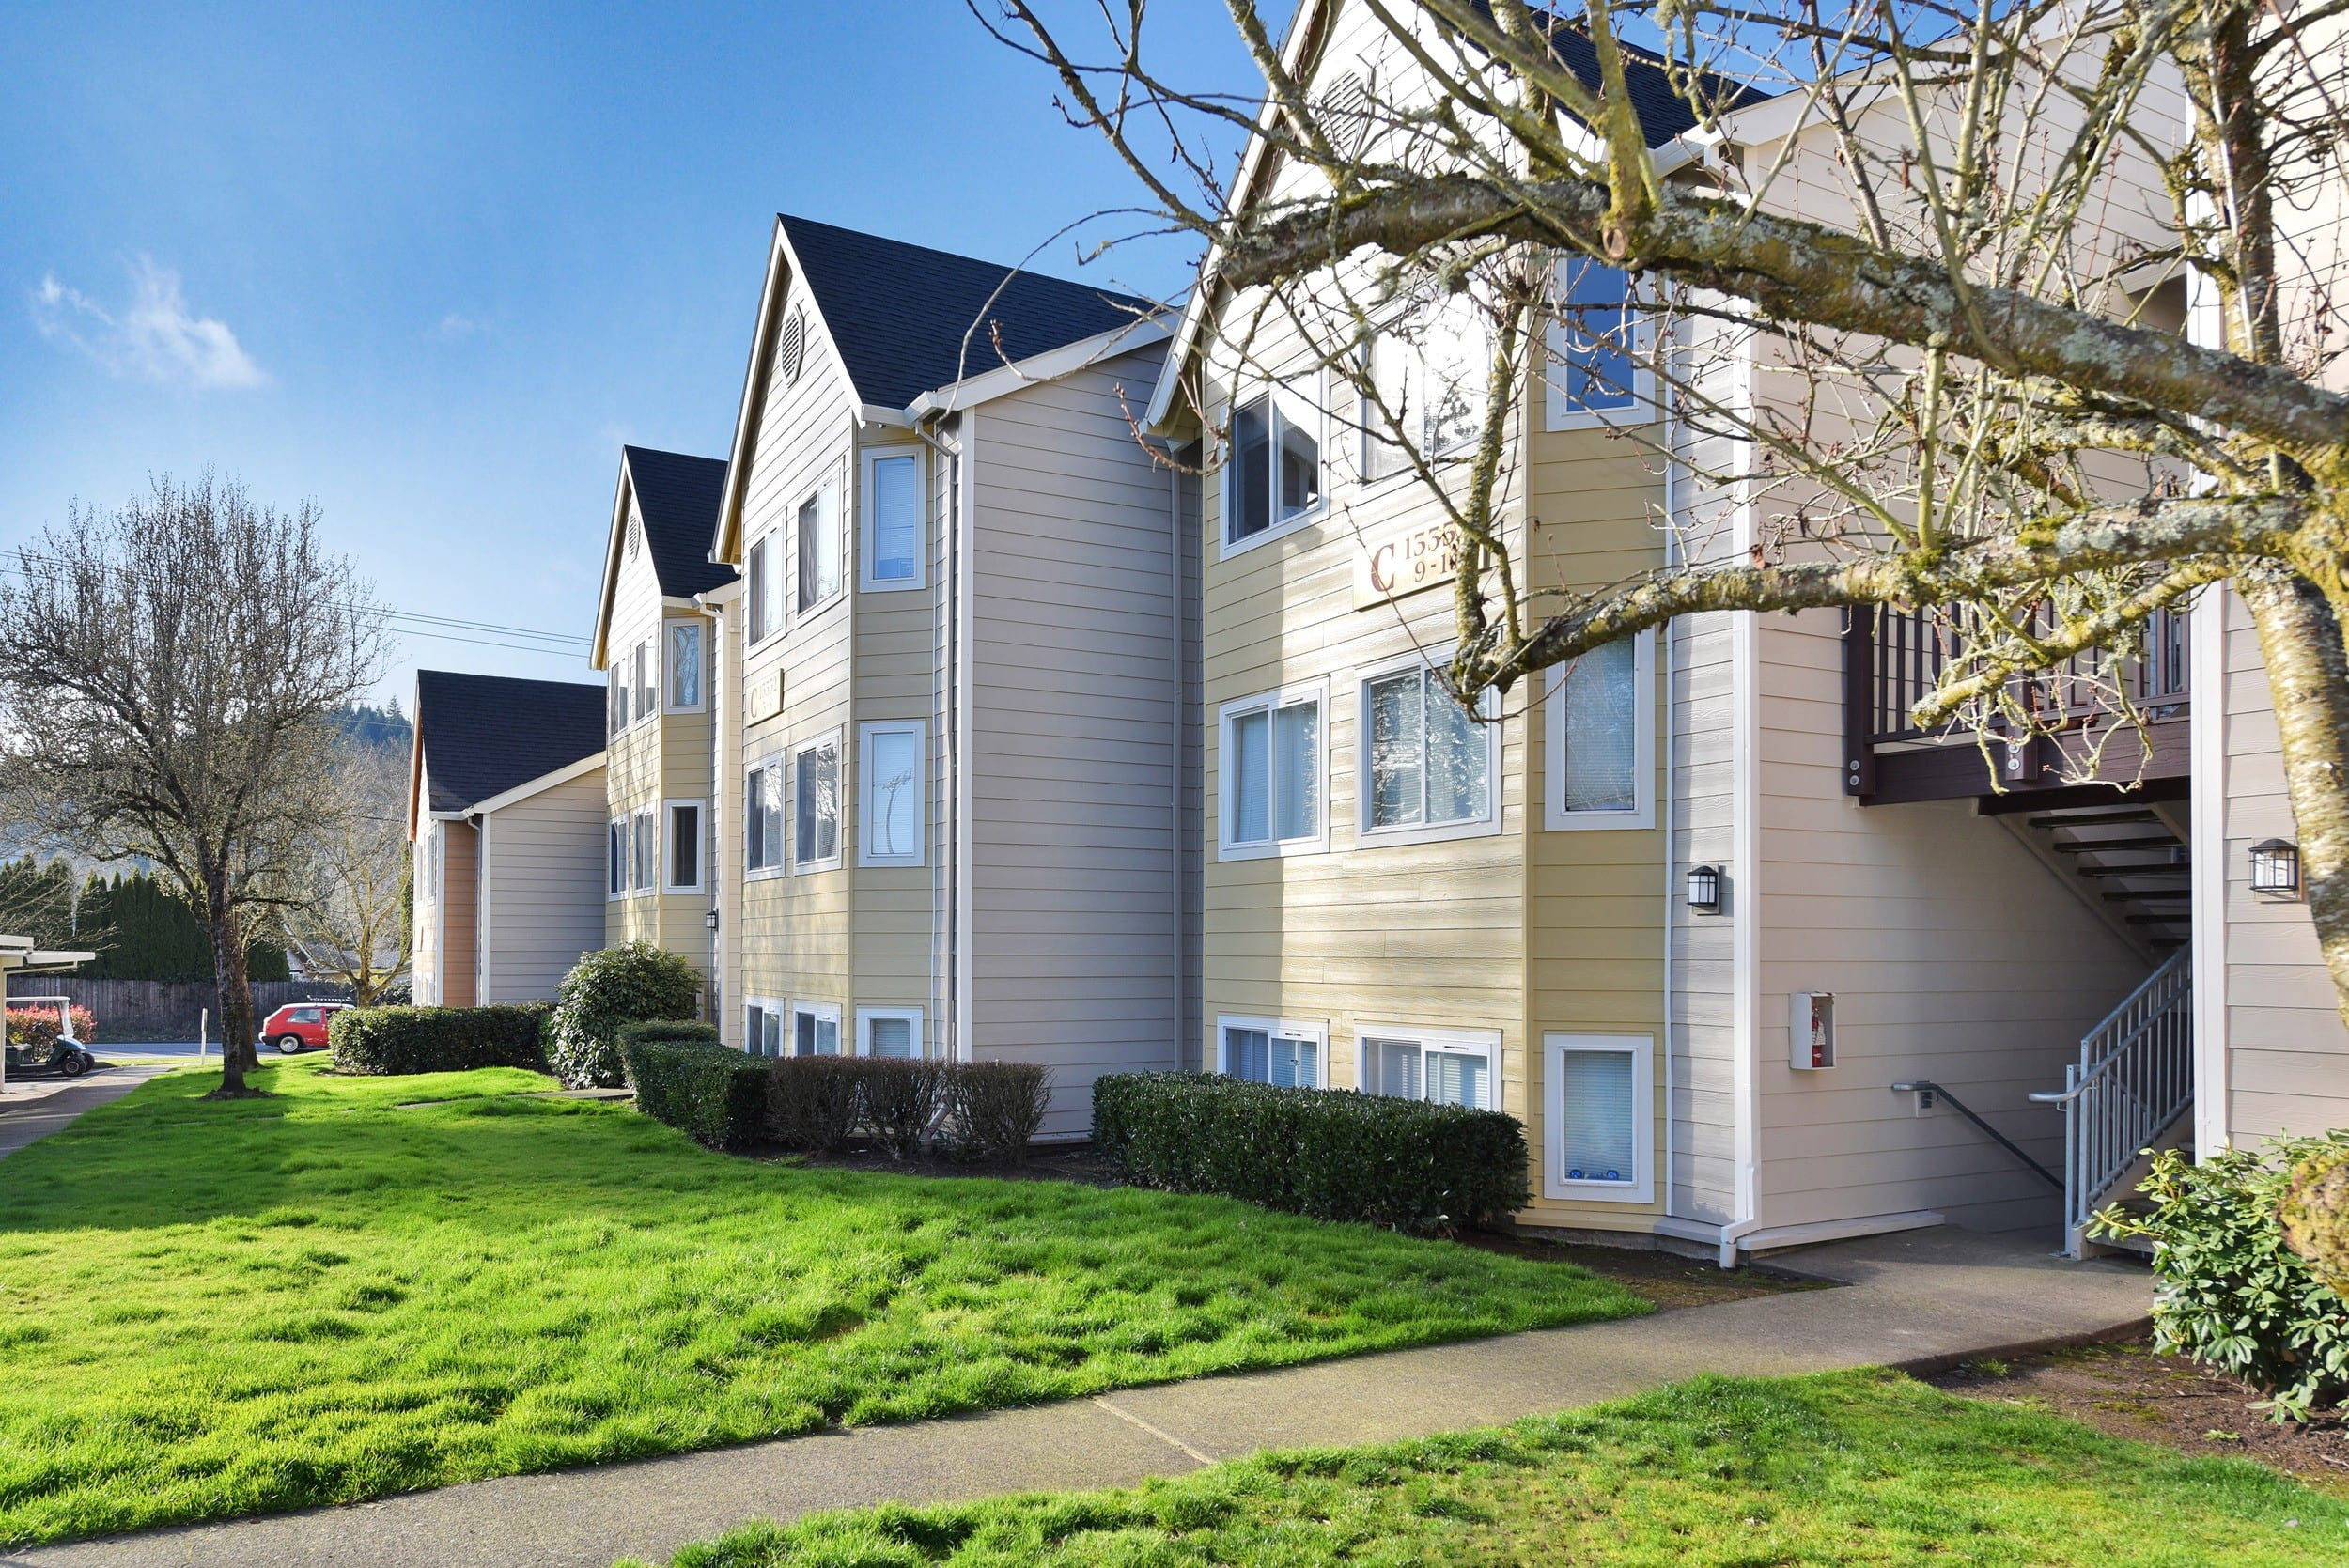 Sidewalk and exterior view At Preserve at Sunnyside Apartments In Clackamas OR